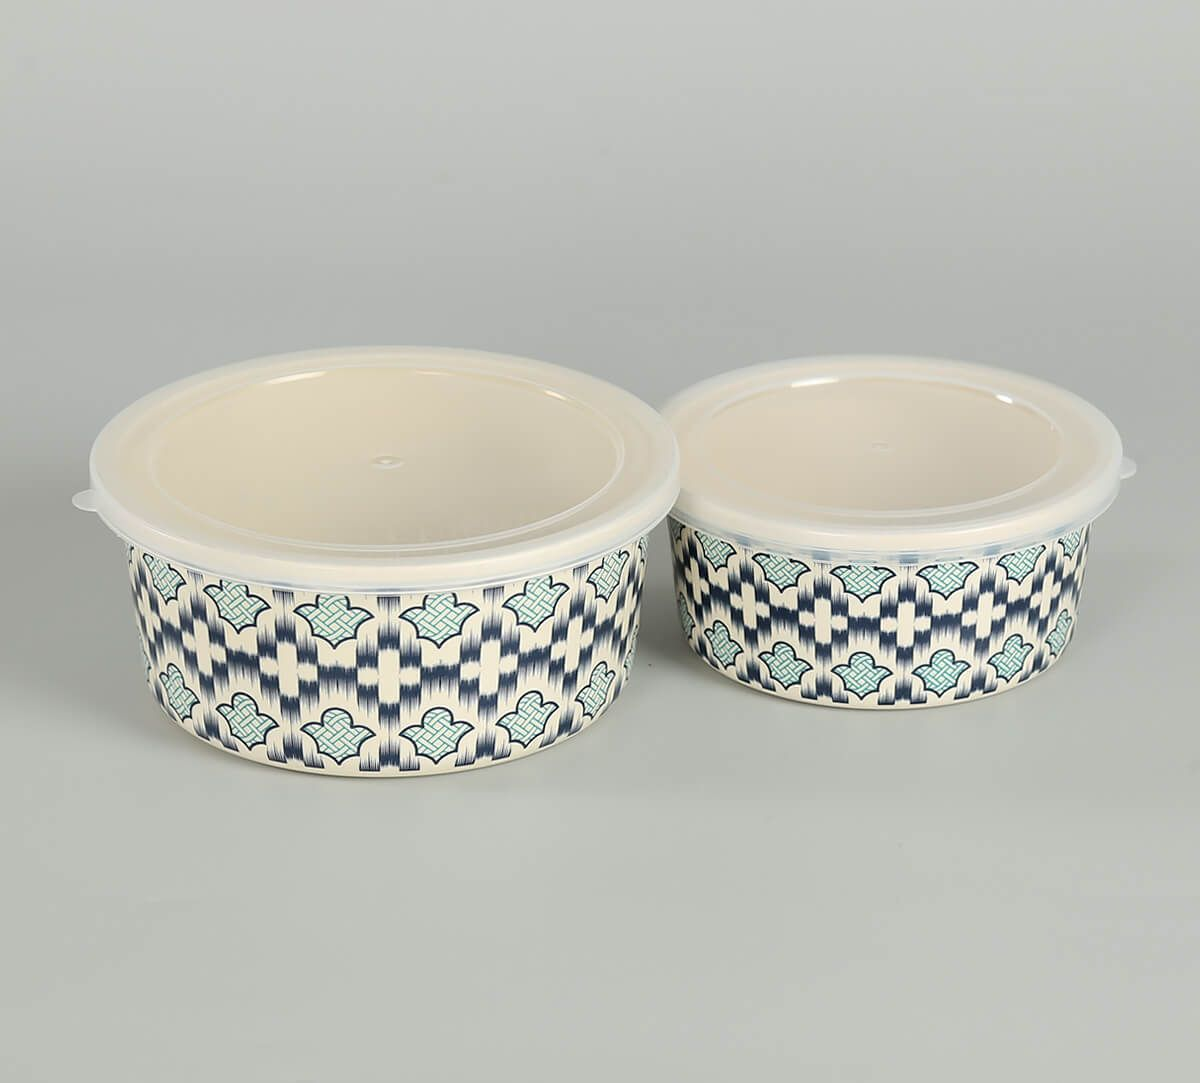 India Circus by Krsnaa Mehta Organised Ovule Small Container set of 2